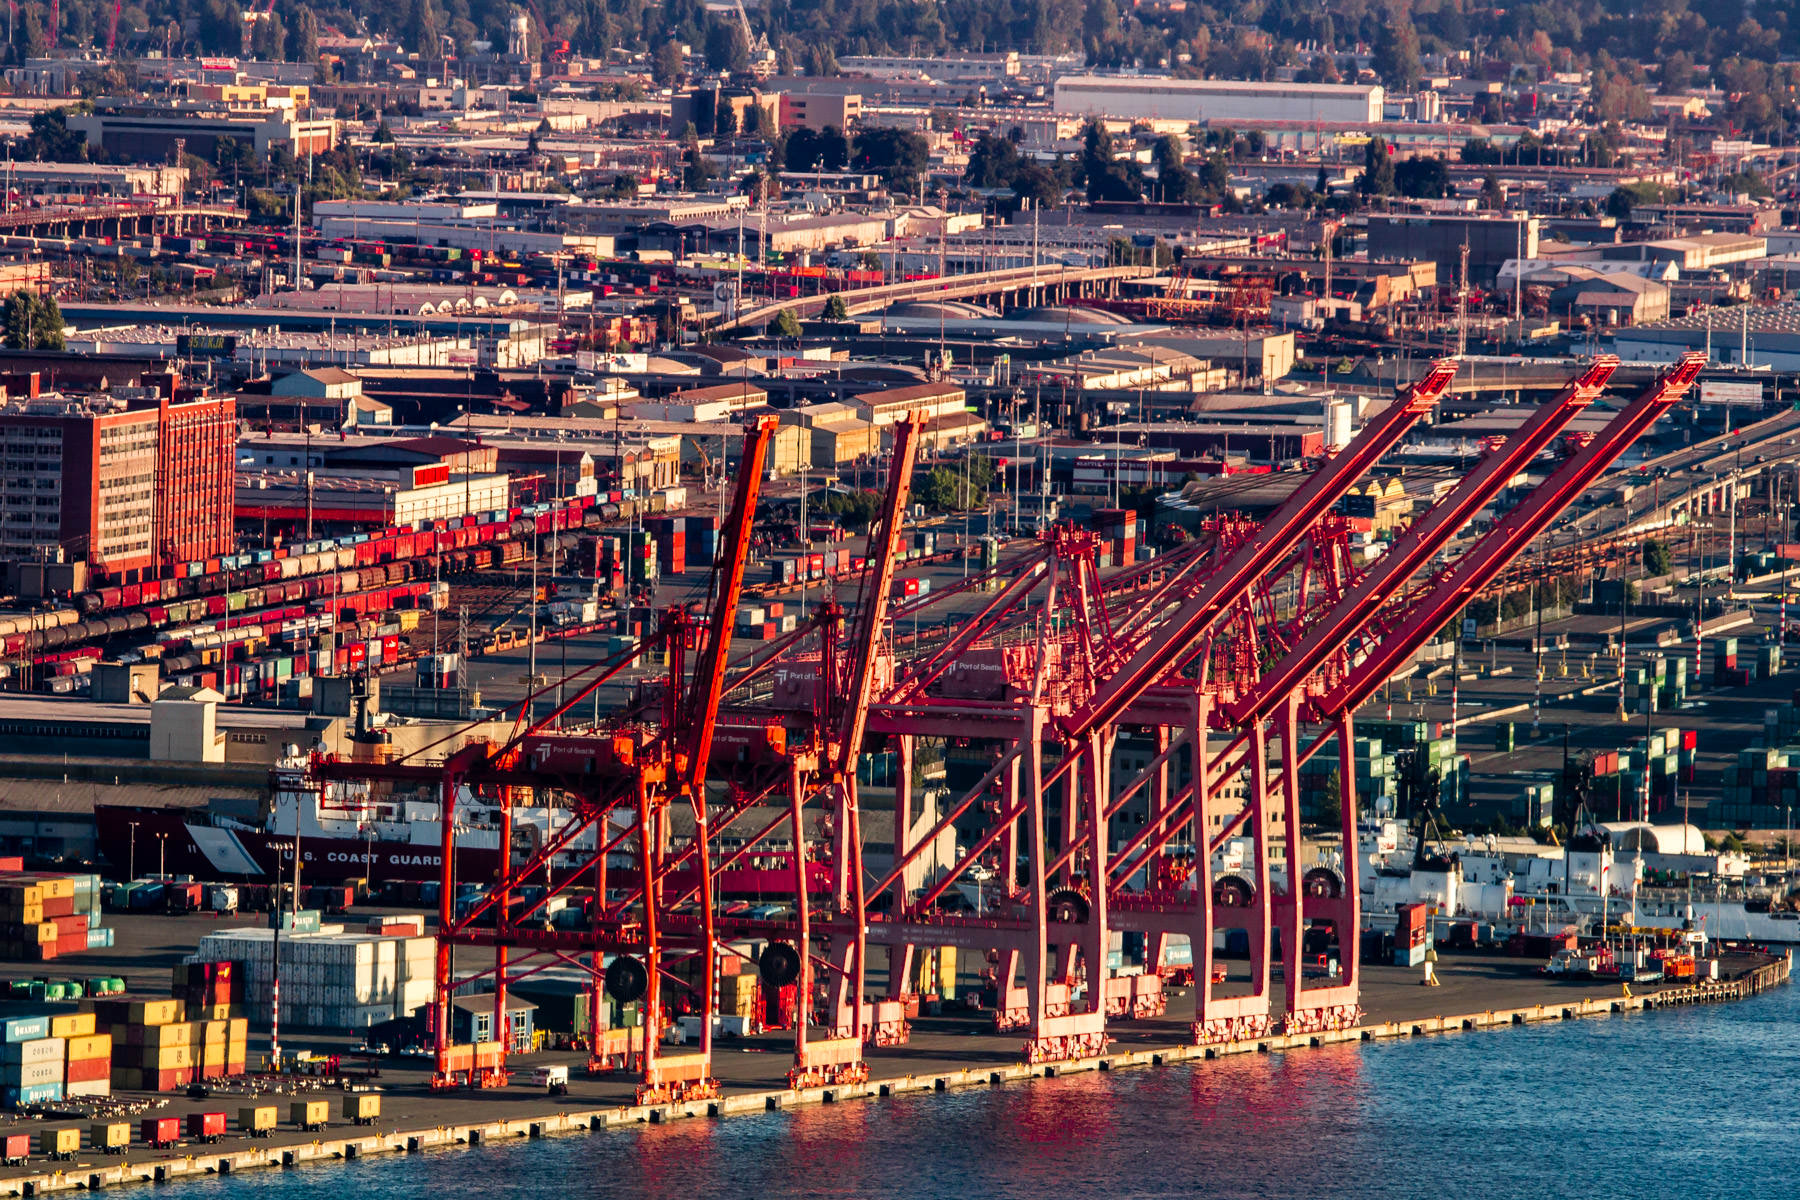 The evening sun illuminates five giant container cranes at the Port of Seattle.